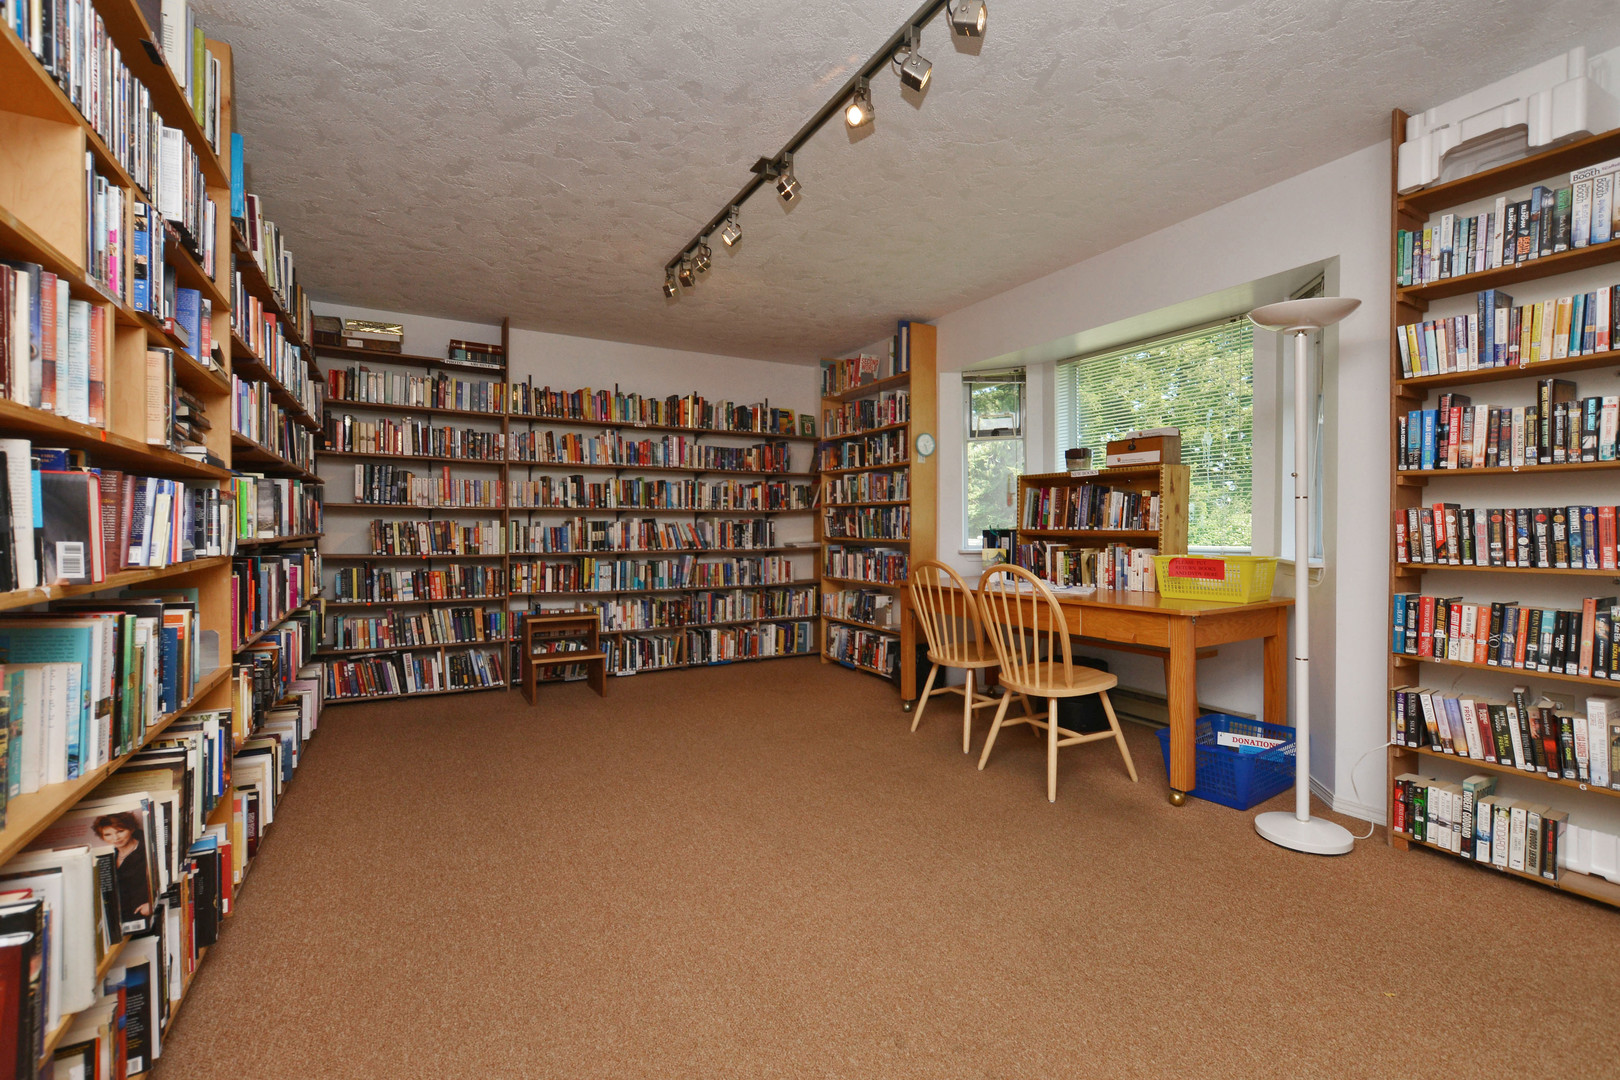 Club house library